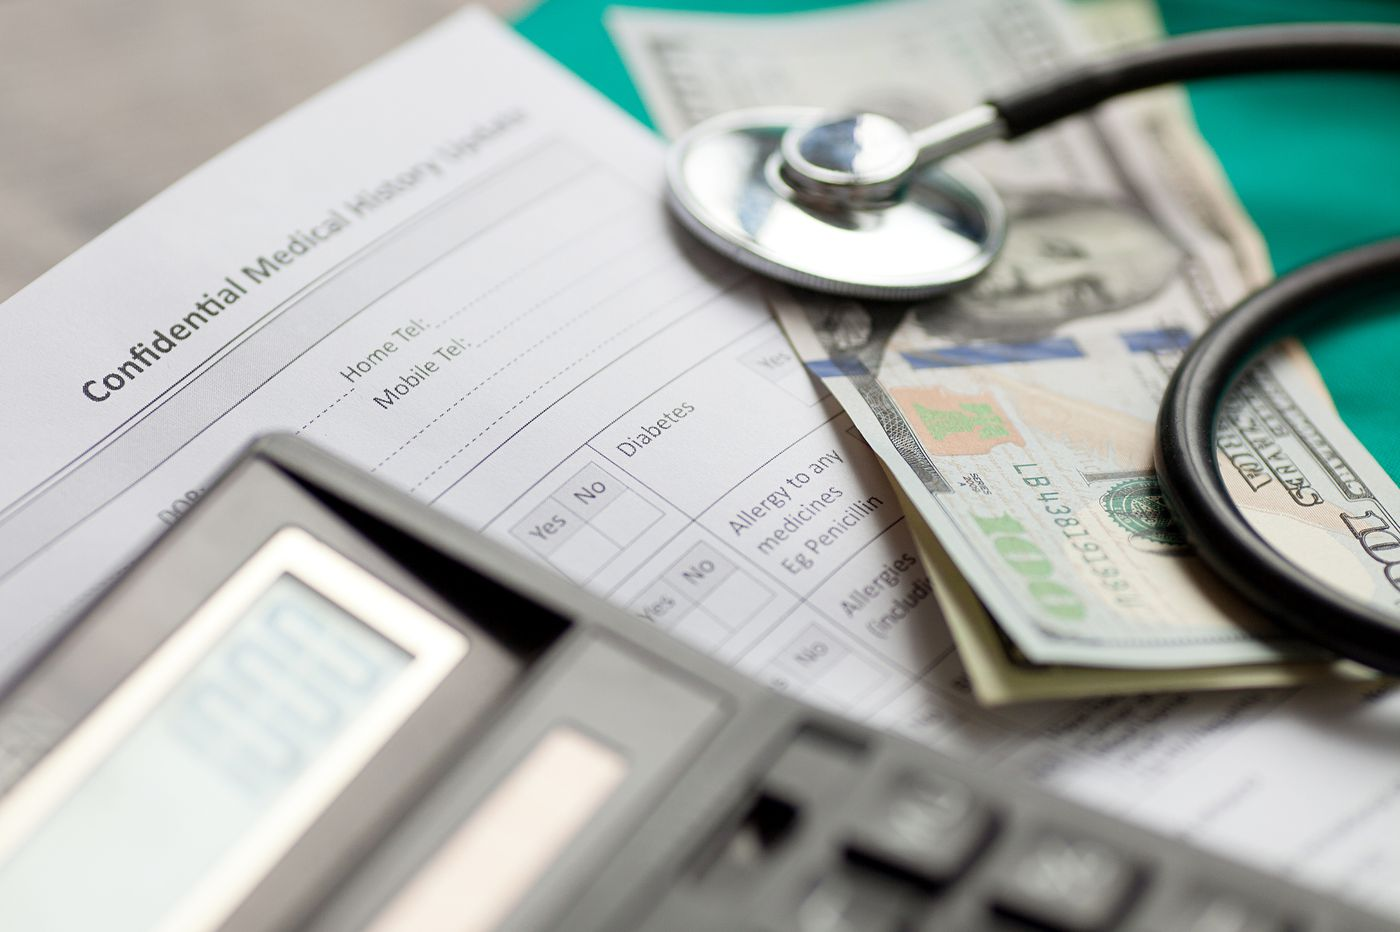 Health costs a major concern for adults nearing Medicare eligibility